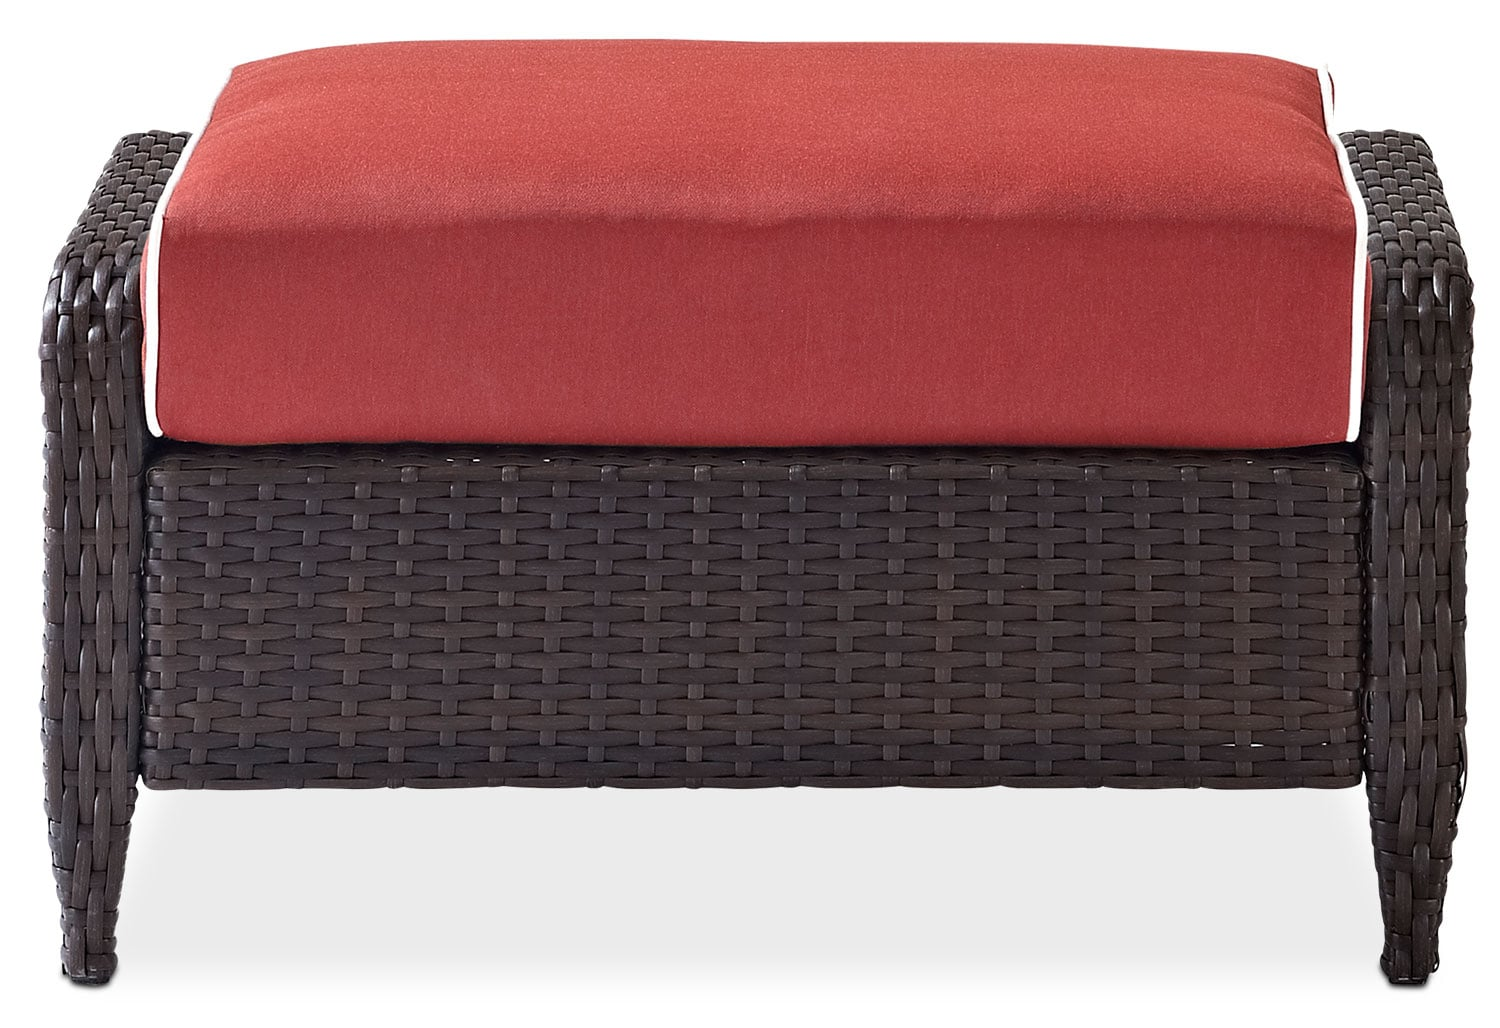 Corona Outdoor Ottoman Sangria Value City Furniture And Mattresses